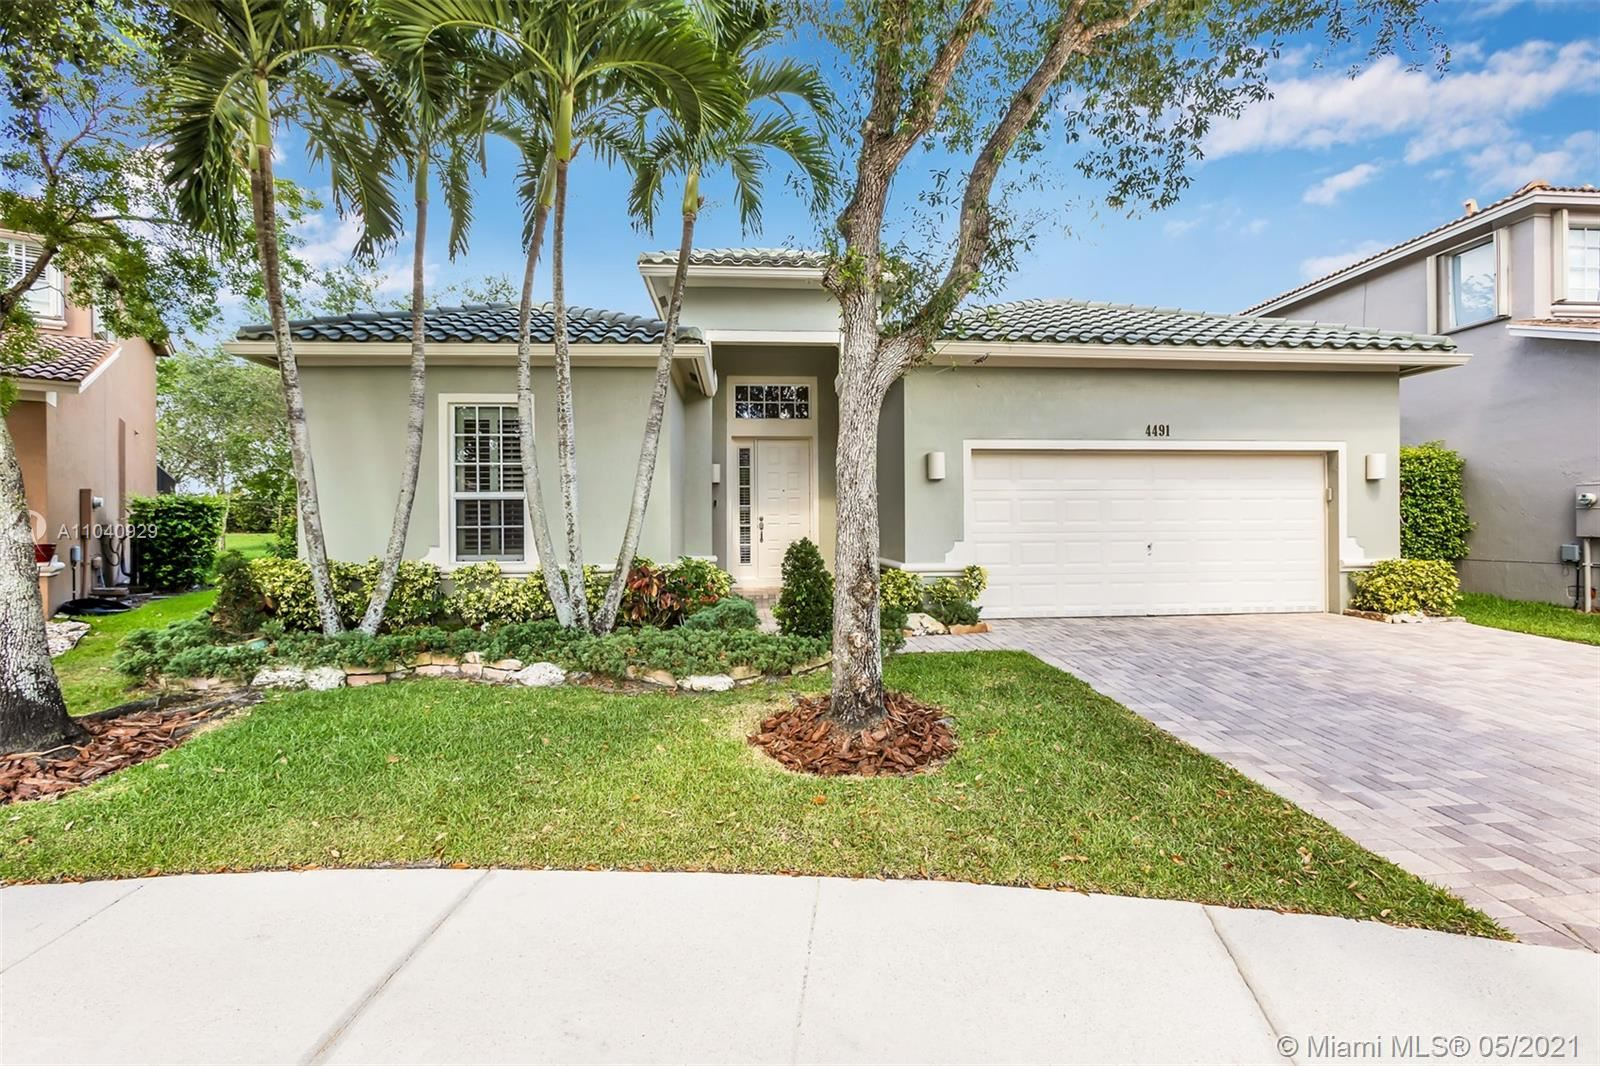 Photo of 4491 W Whitewater Ave, Weston, FL 33332 (MLS # A11040929)